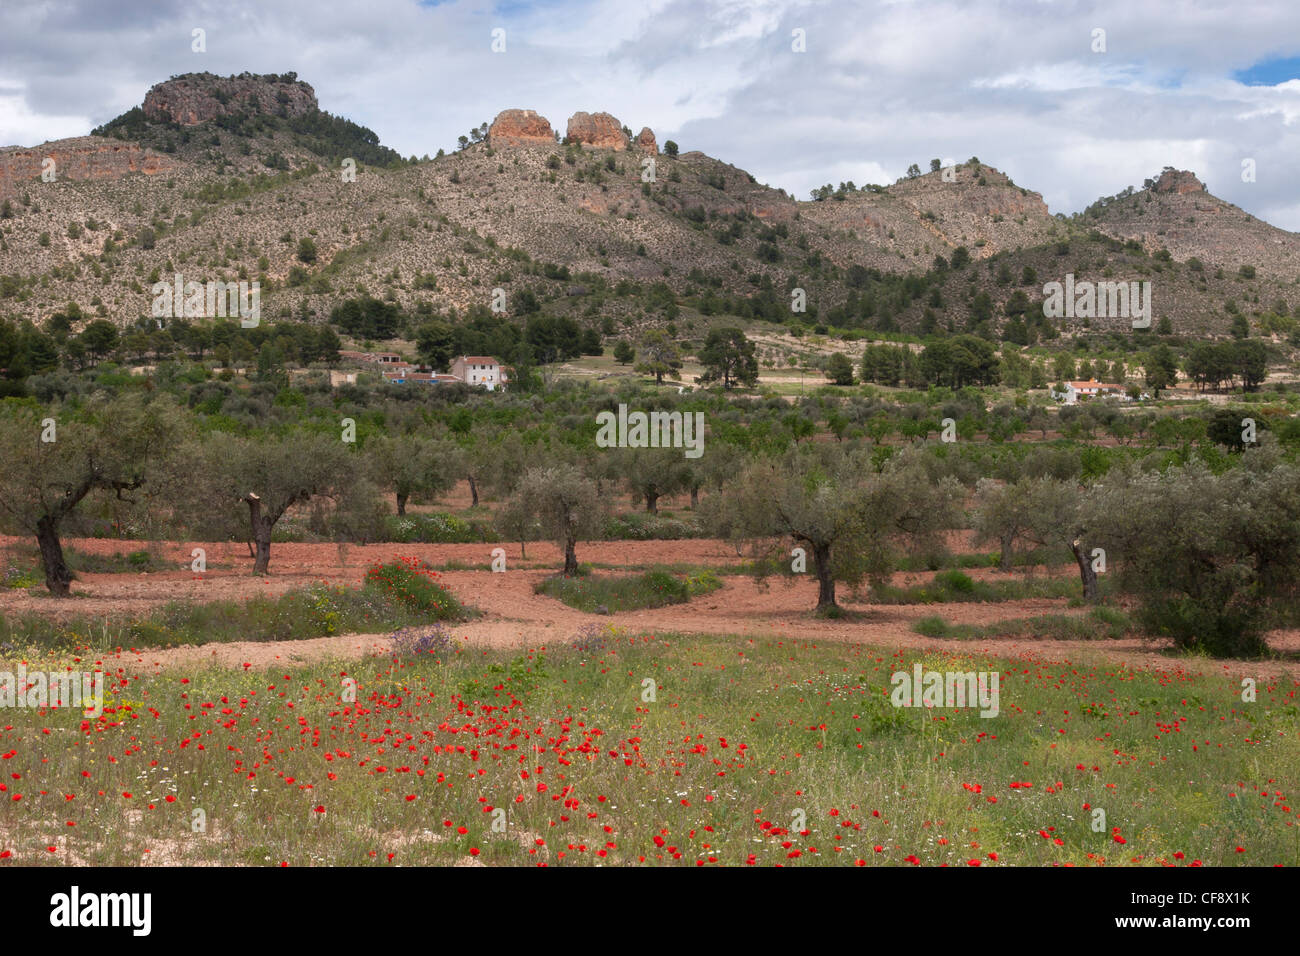 Olive trees and poppies growing in the Sierra de Seguras. - Stock Image